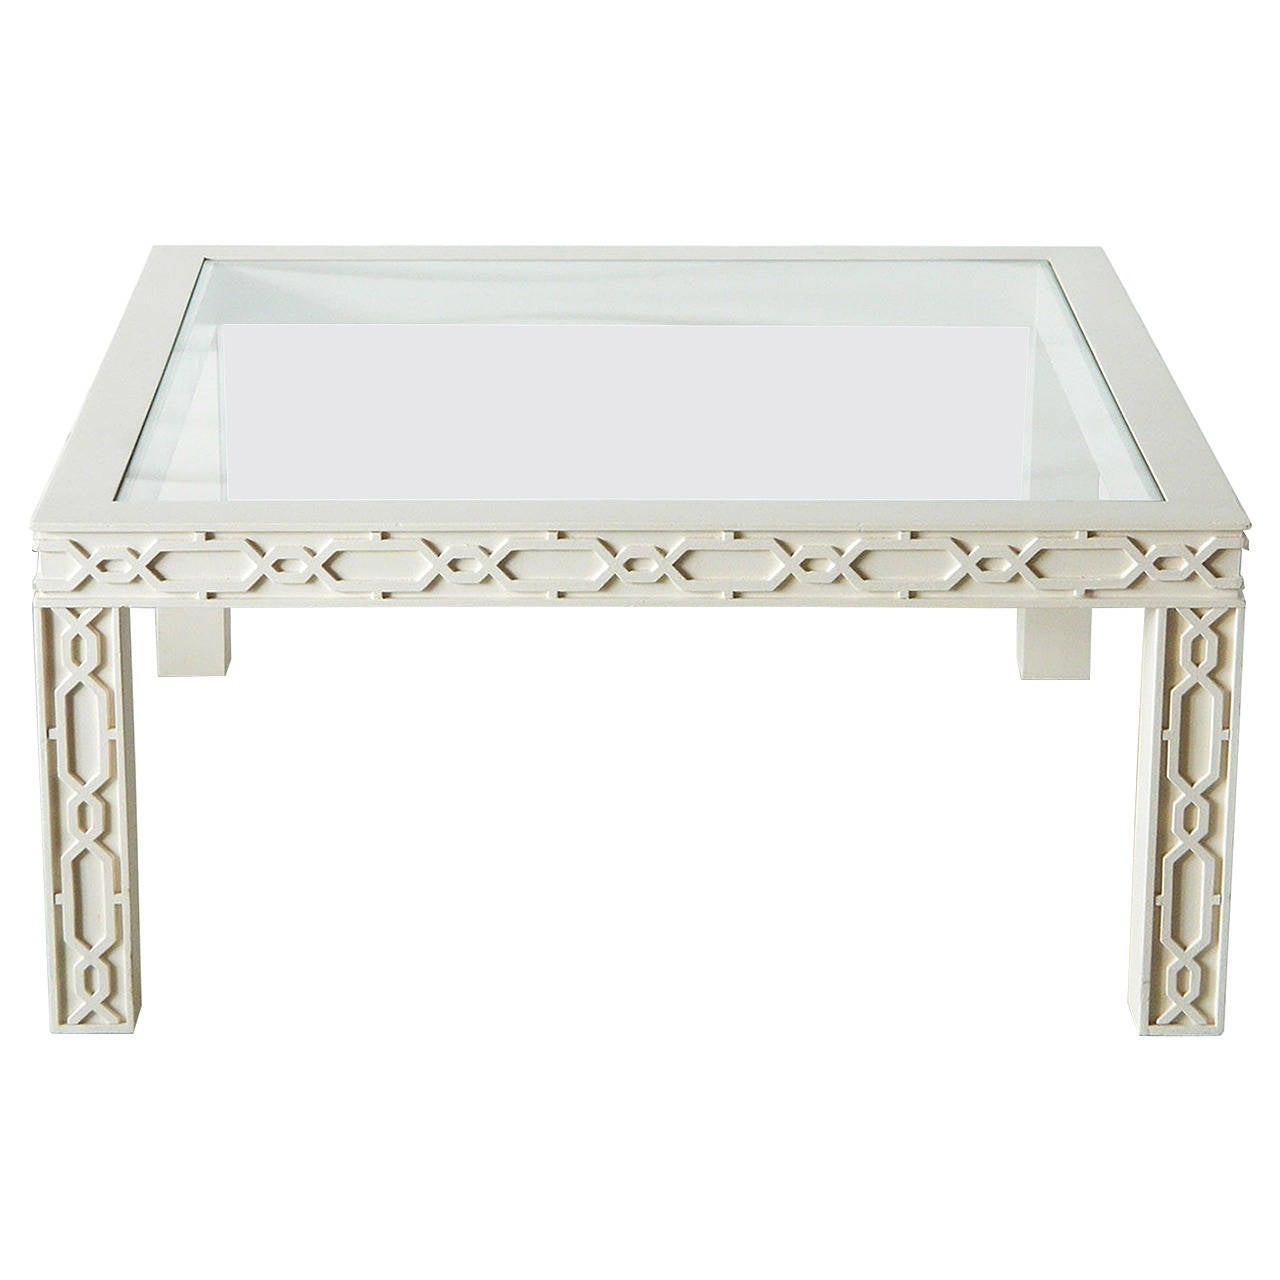 Lattice Coffee Table For Sale At 1stdibs